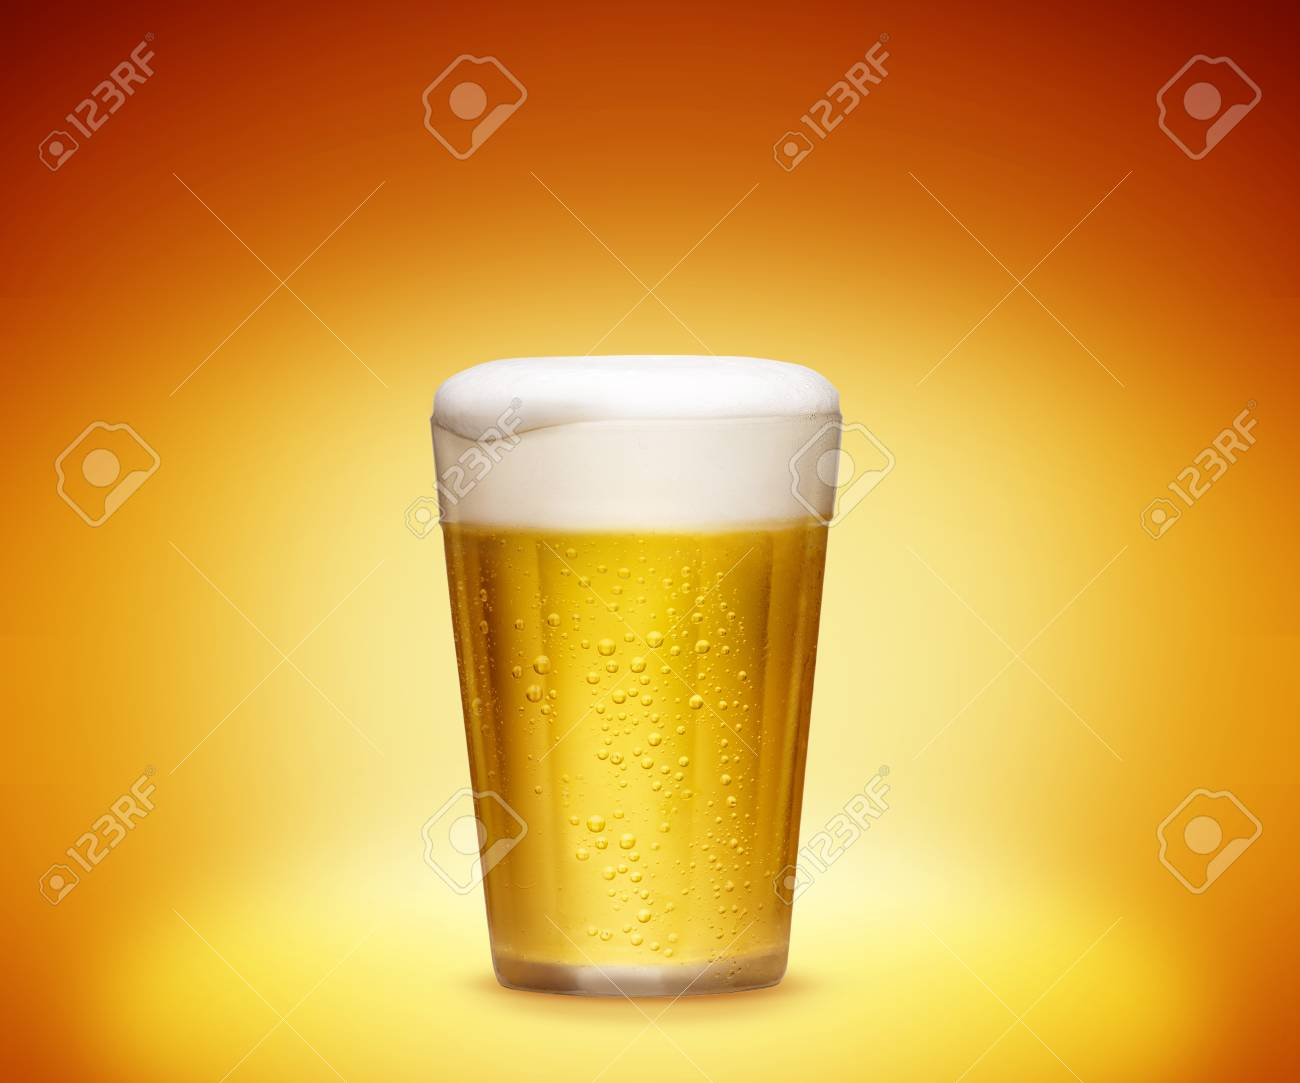 Glass of cold beer - 49967117